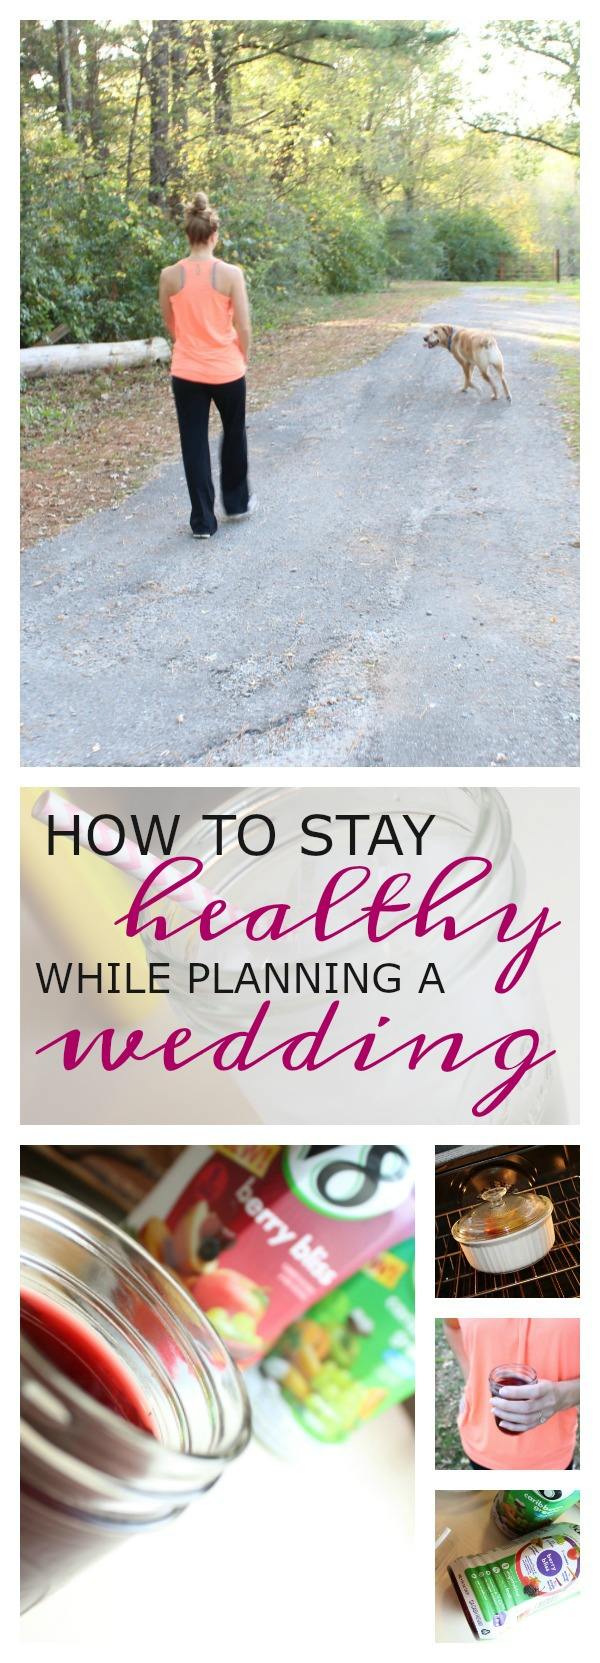 How to Stay Healthy While Planning a Wedding